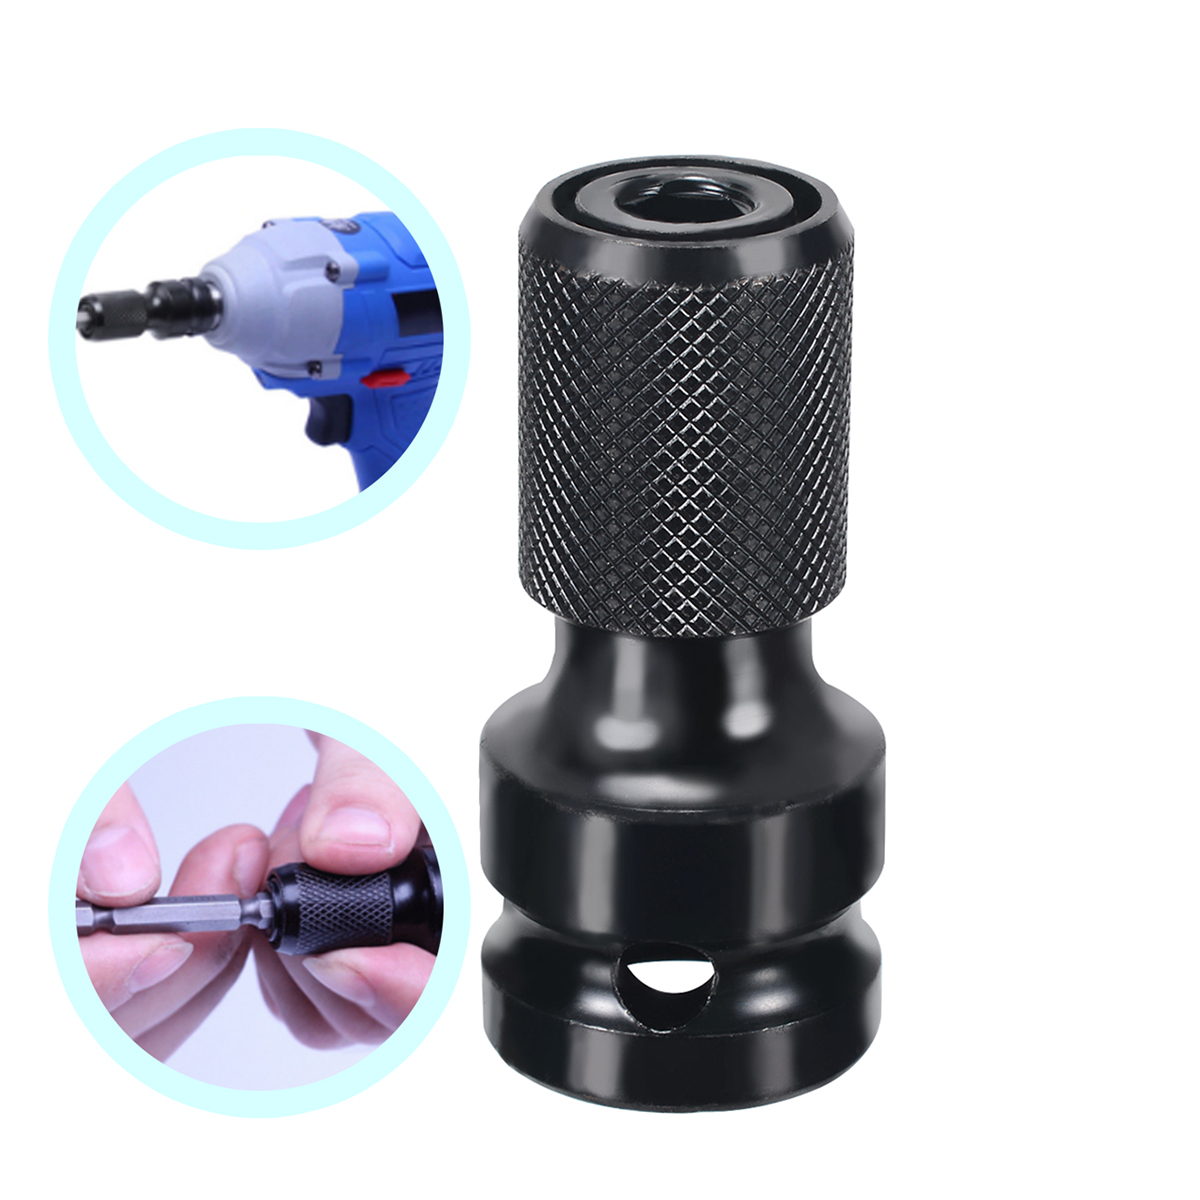 1/2'' Square To 1/4'' Hex Shank Socket Adapter Quicker Release Converter For Impact Wrench Length 5cm Mayitr